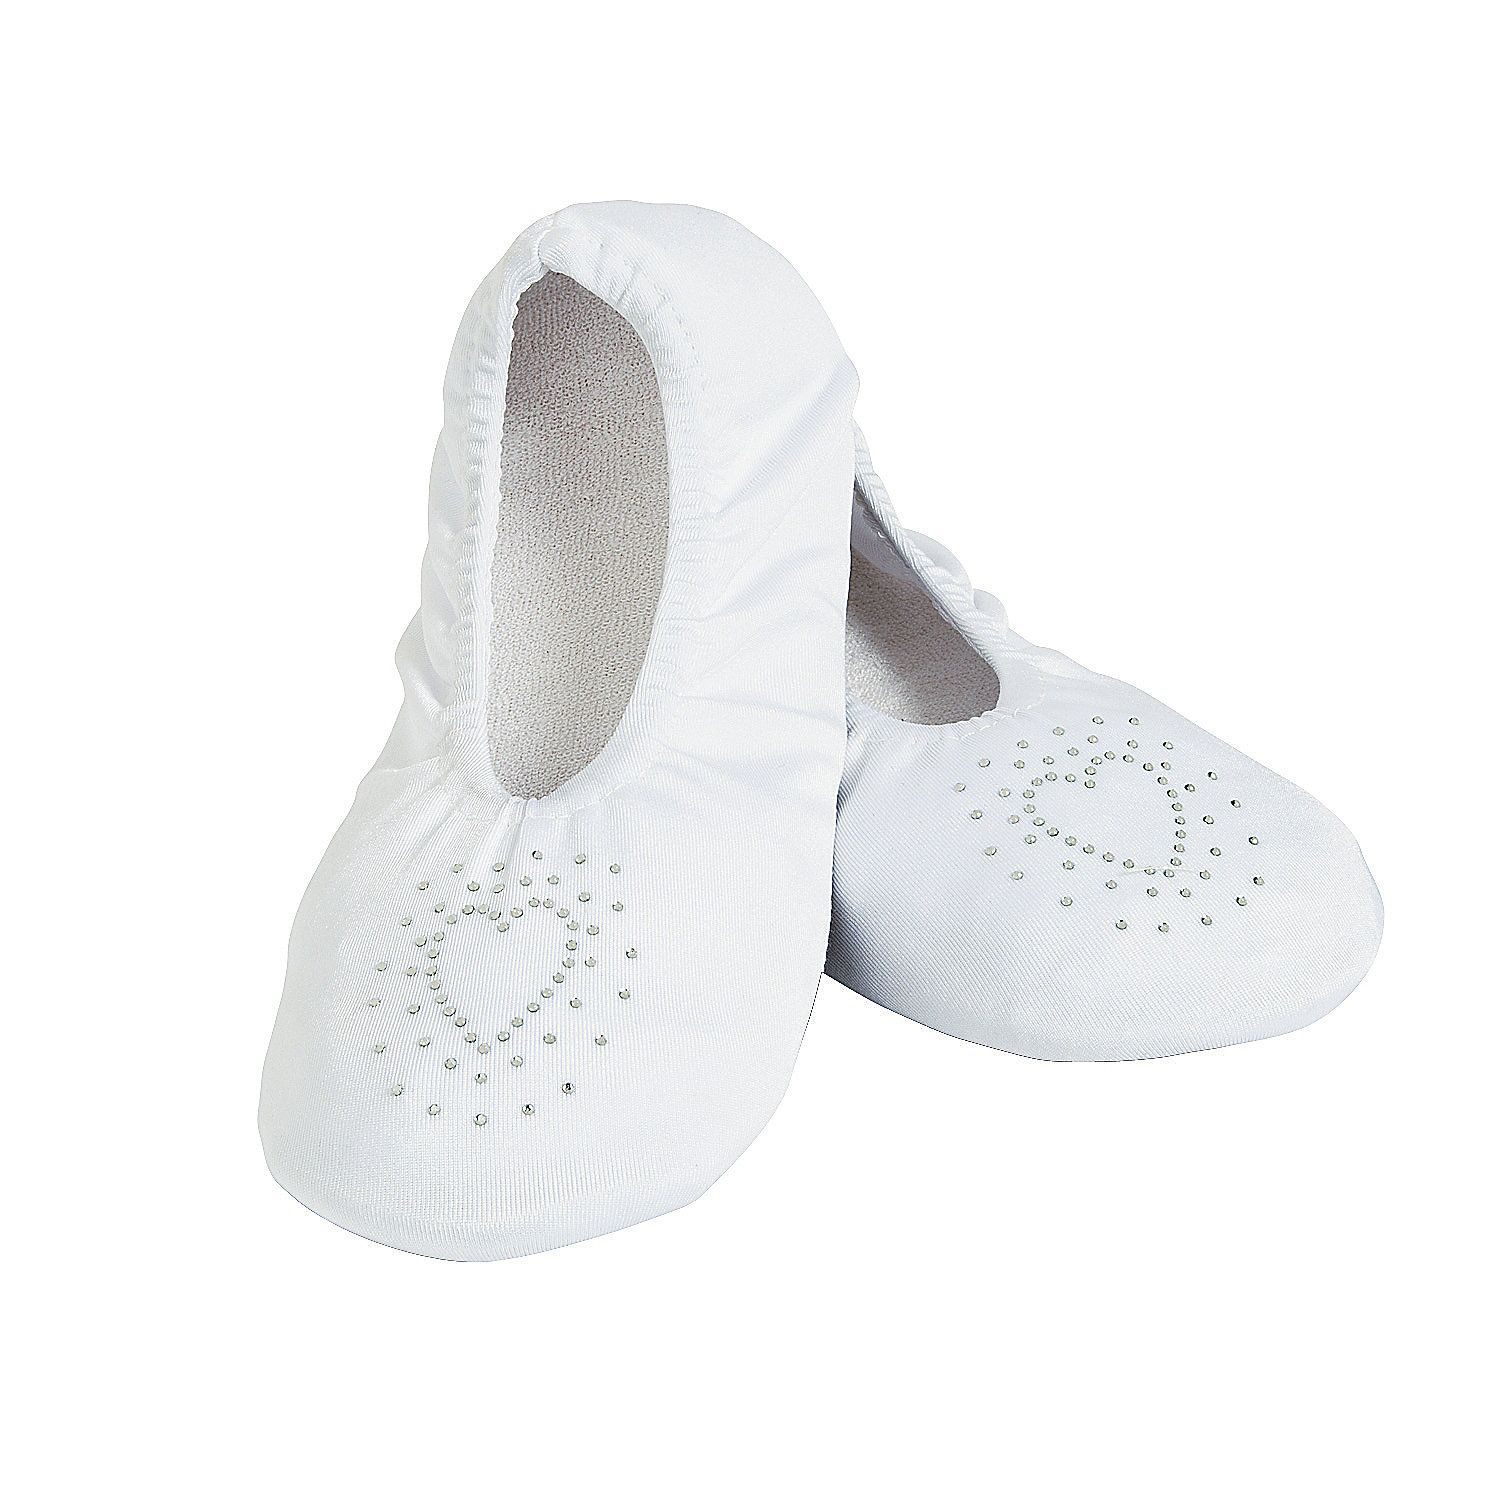 After A Long Day In Heels Kick Them Off And Dance At The Wedding Reception These White Slippers They Make Thoughtful Gifts For Your